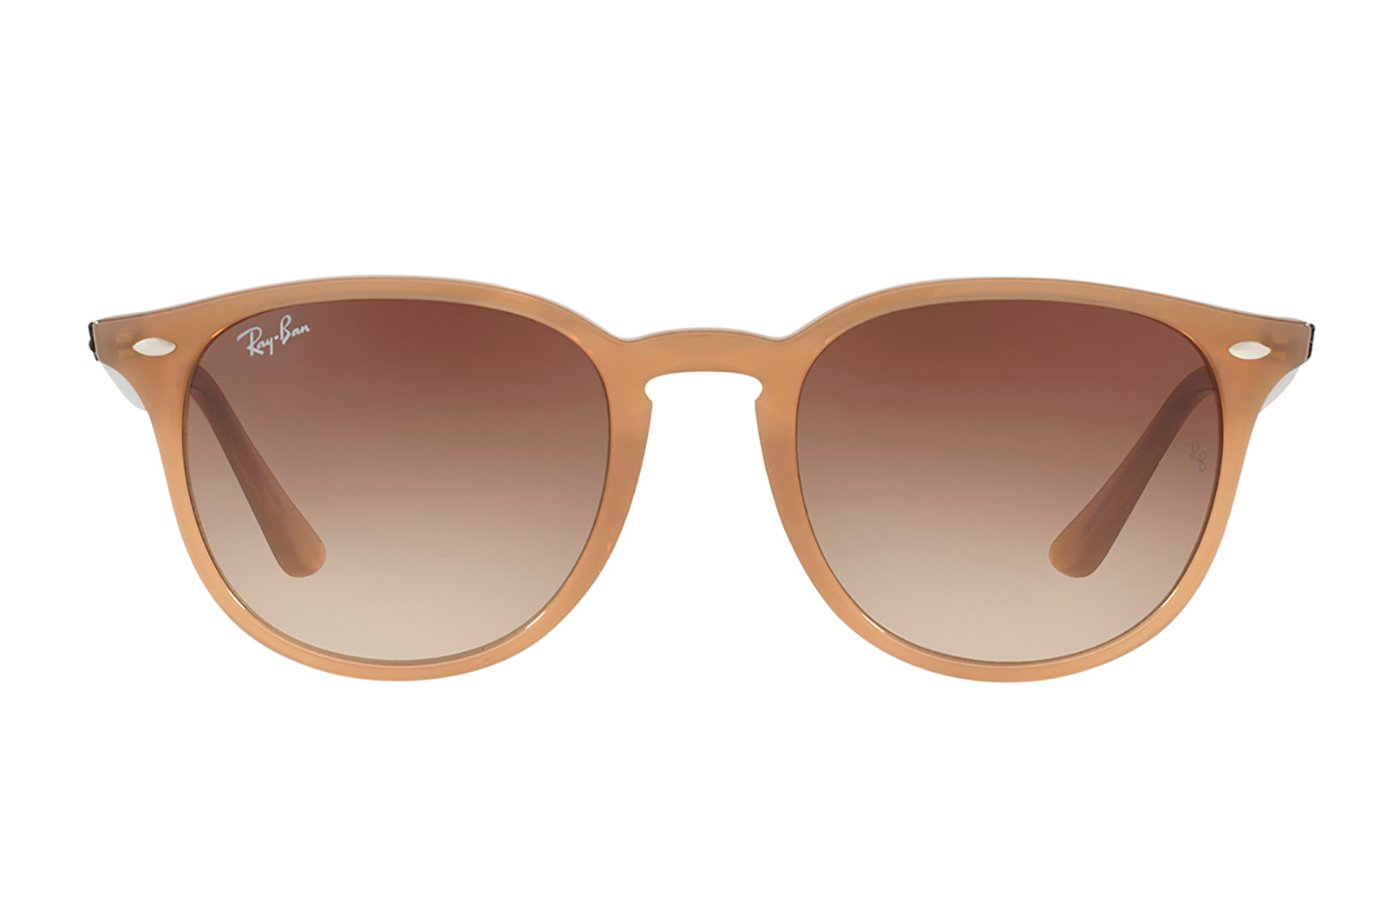 RAY-BAN  0RB4259 51 616613 SHINY OPAL BEIGE